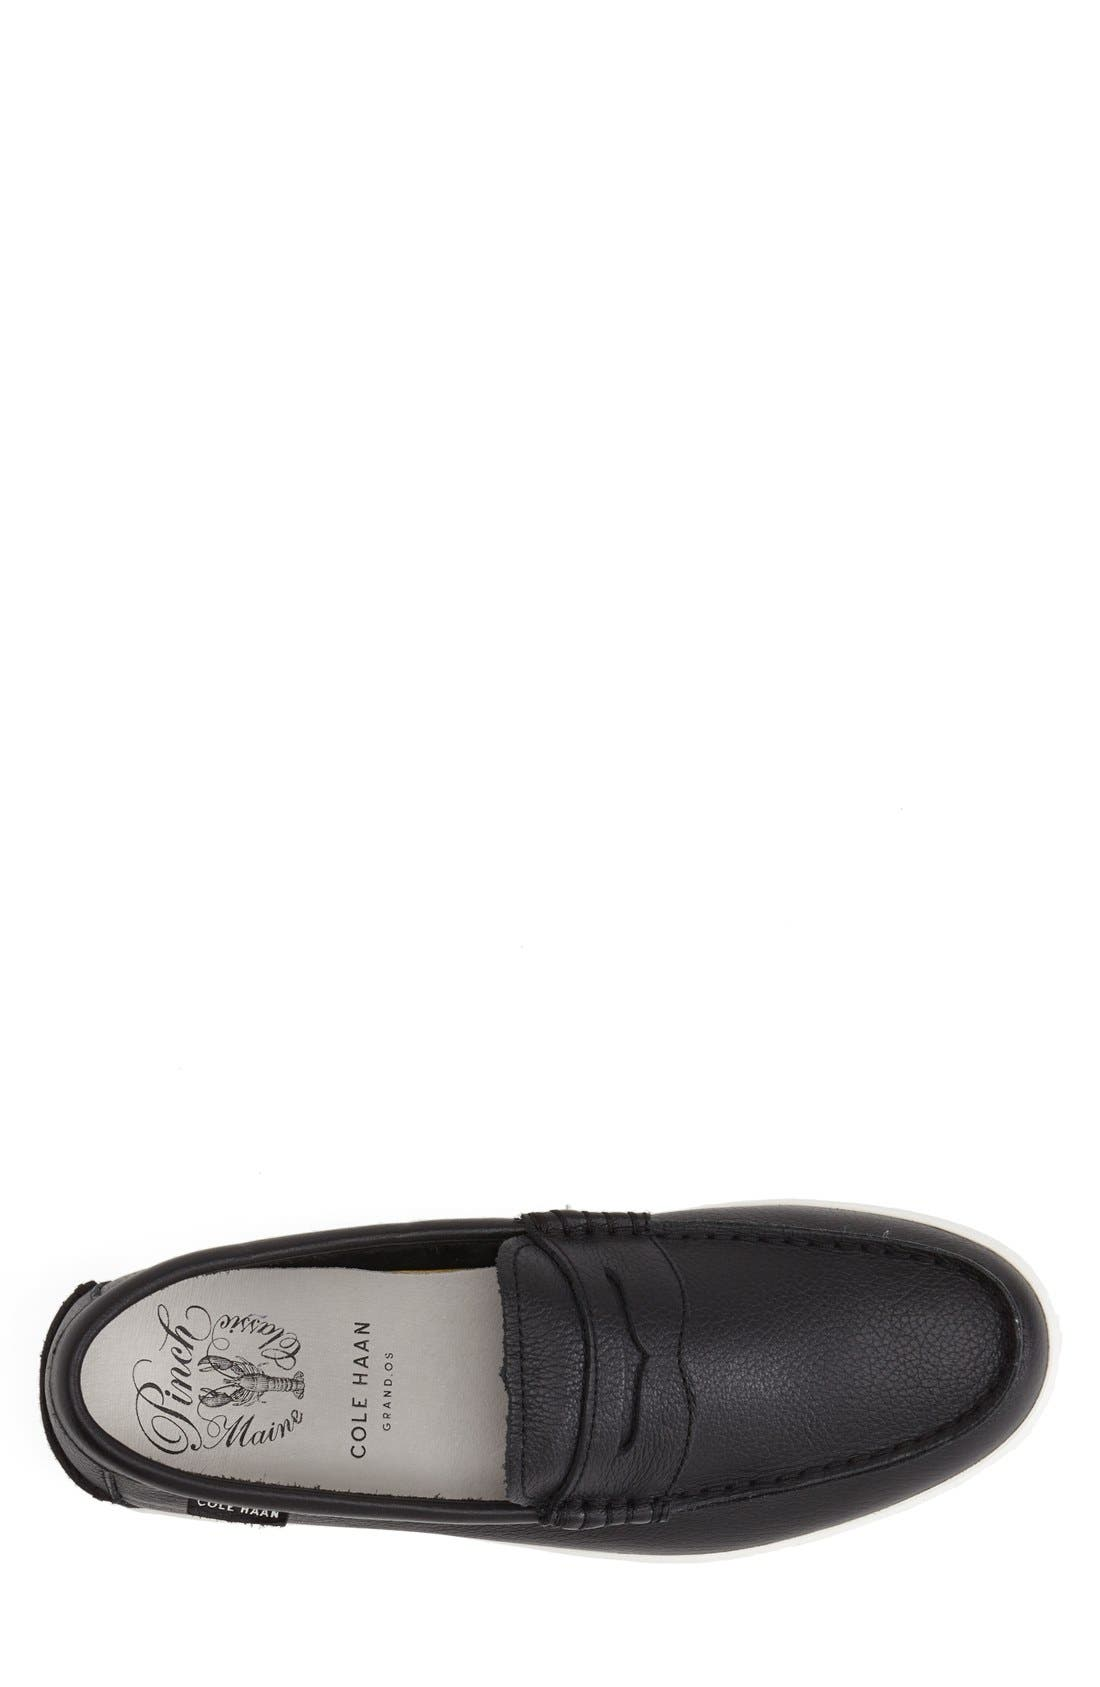 'Pinch' Penny Loafer,                             Alternate thumbnail 7, color,                             Black Leather/ White